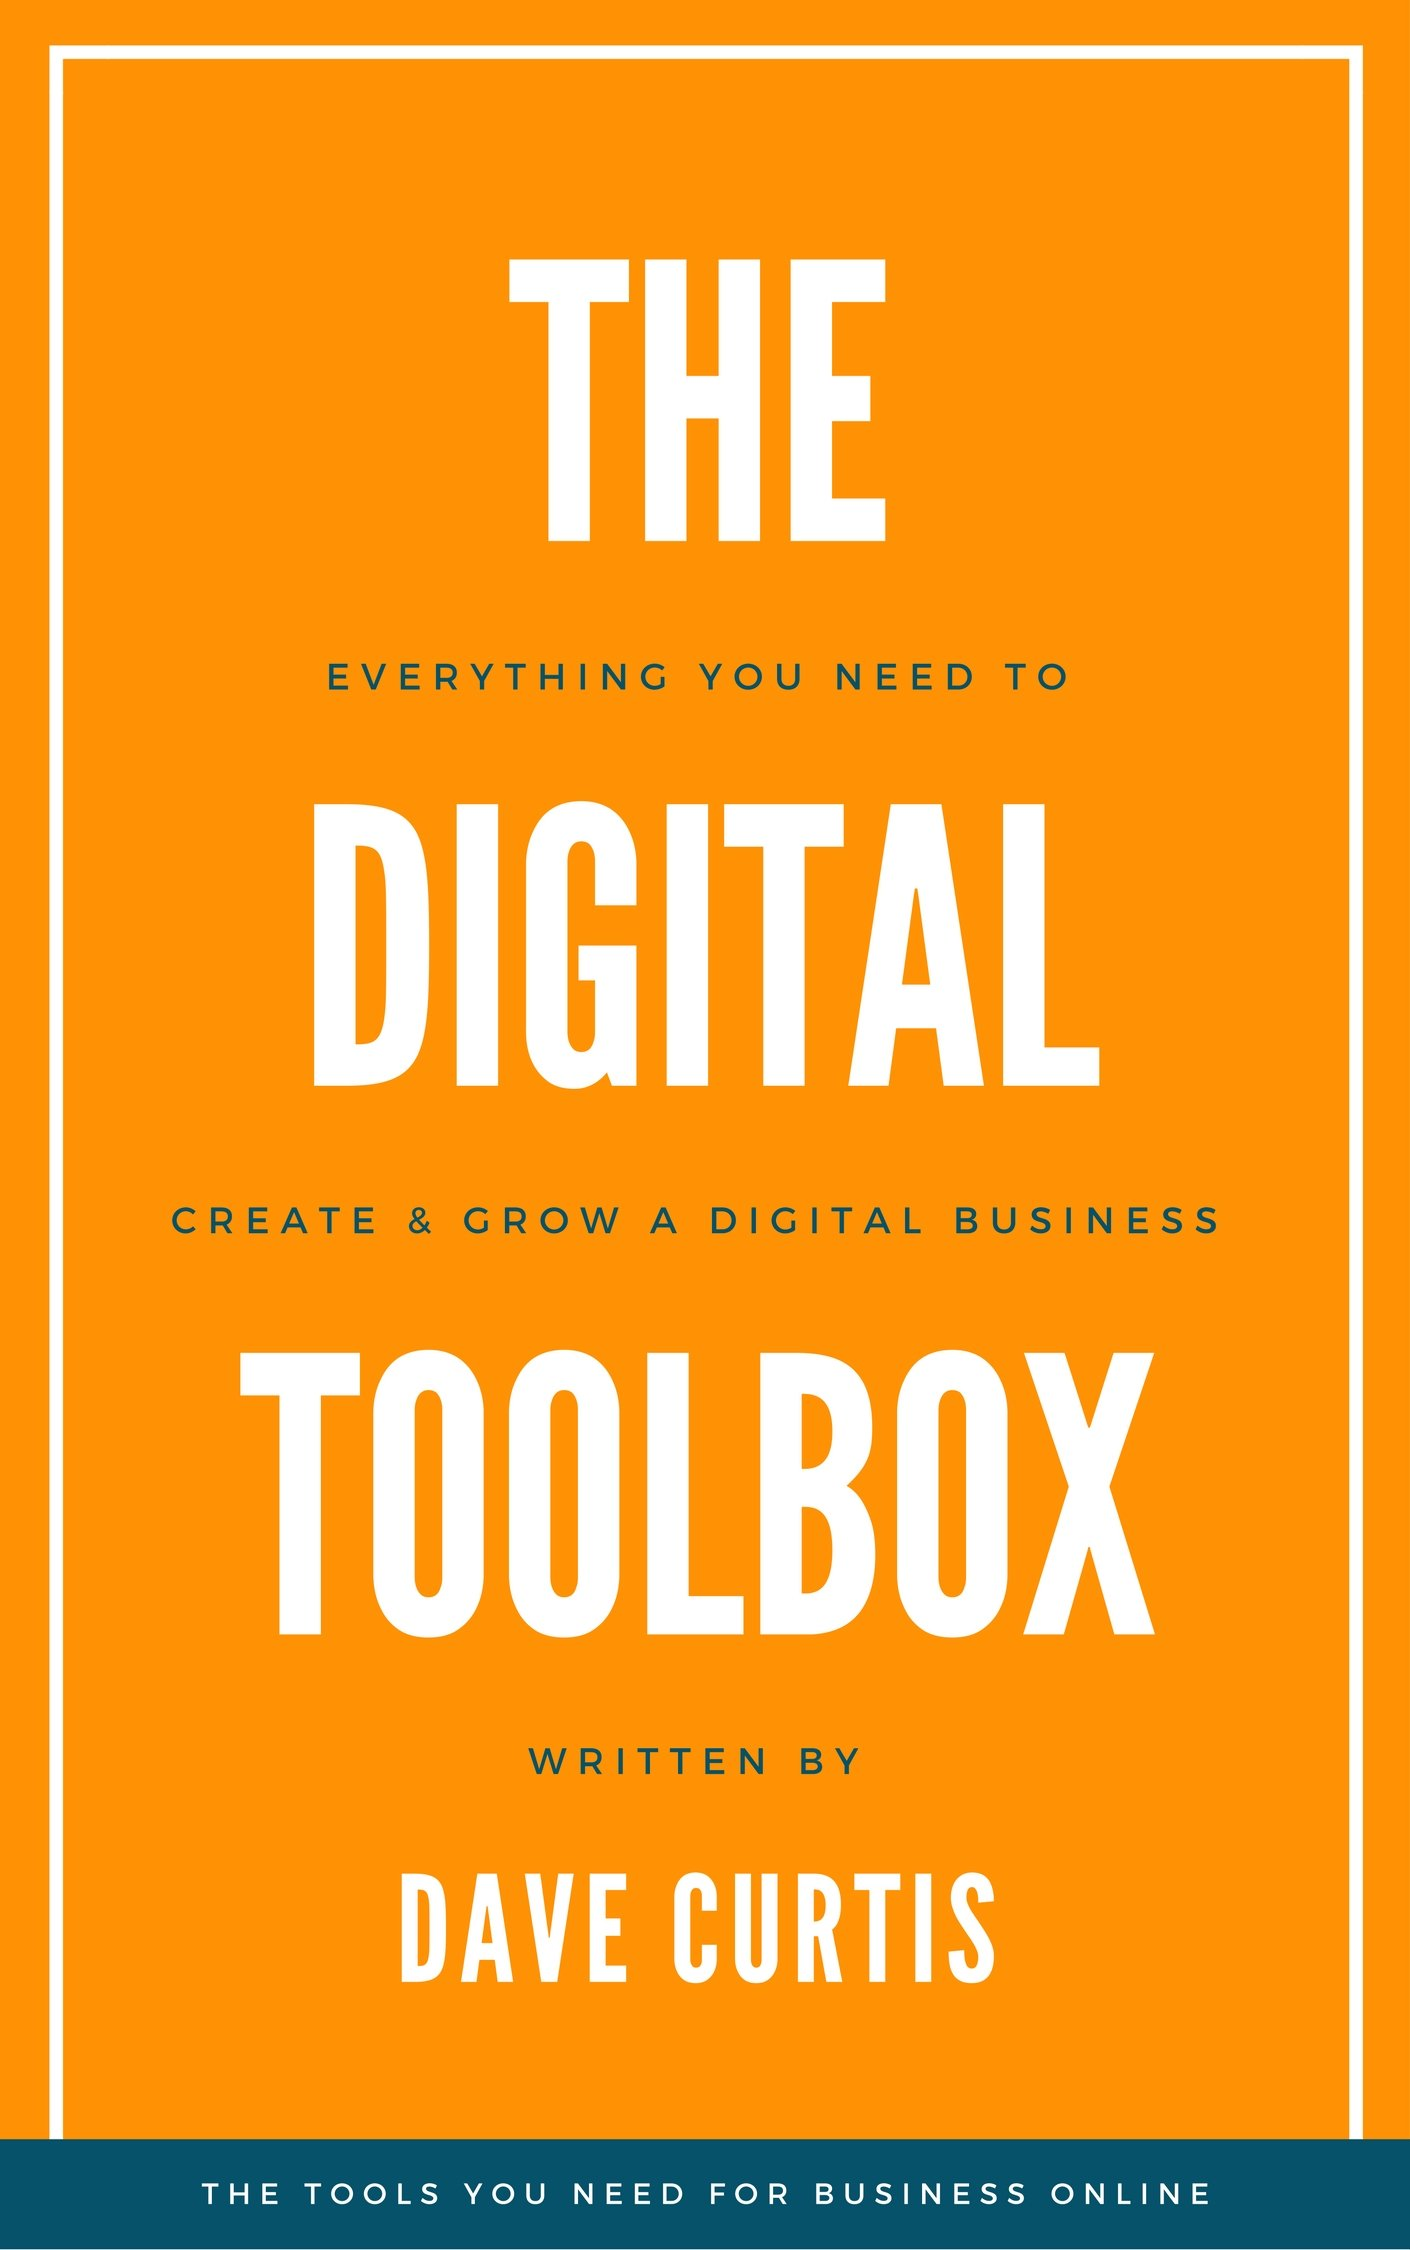 The Digital ToolBox by Dave Curtis